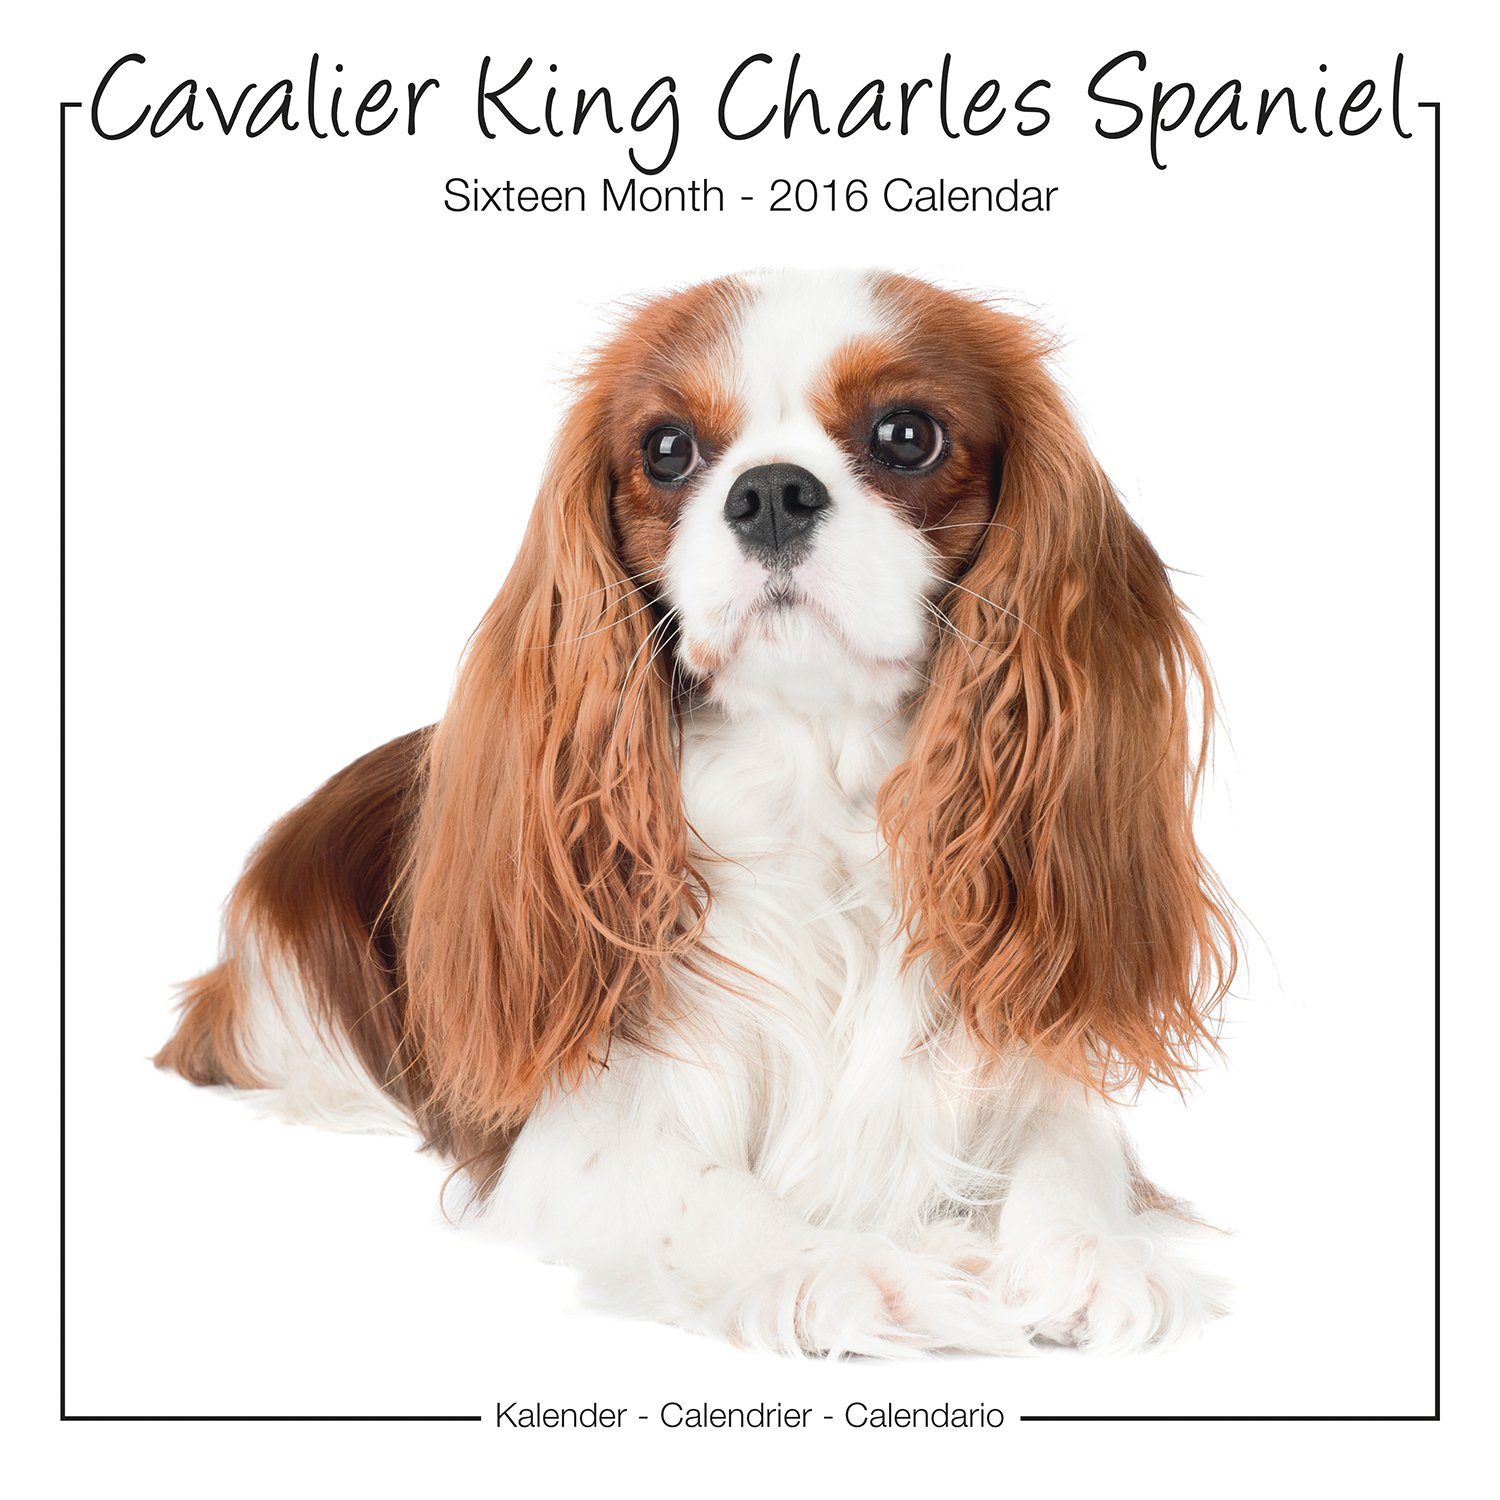 Cavalier king charles spaniel calendar 2016 wall calendars dog cavalier king charles spaniel calendar 2016 wall calendars dog calendars monthly wall calendar by avonside studio megacalendars 9781782086833 nvjuhfo Image collections